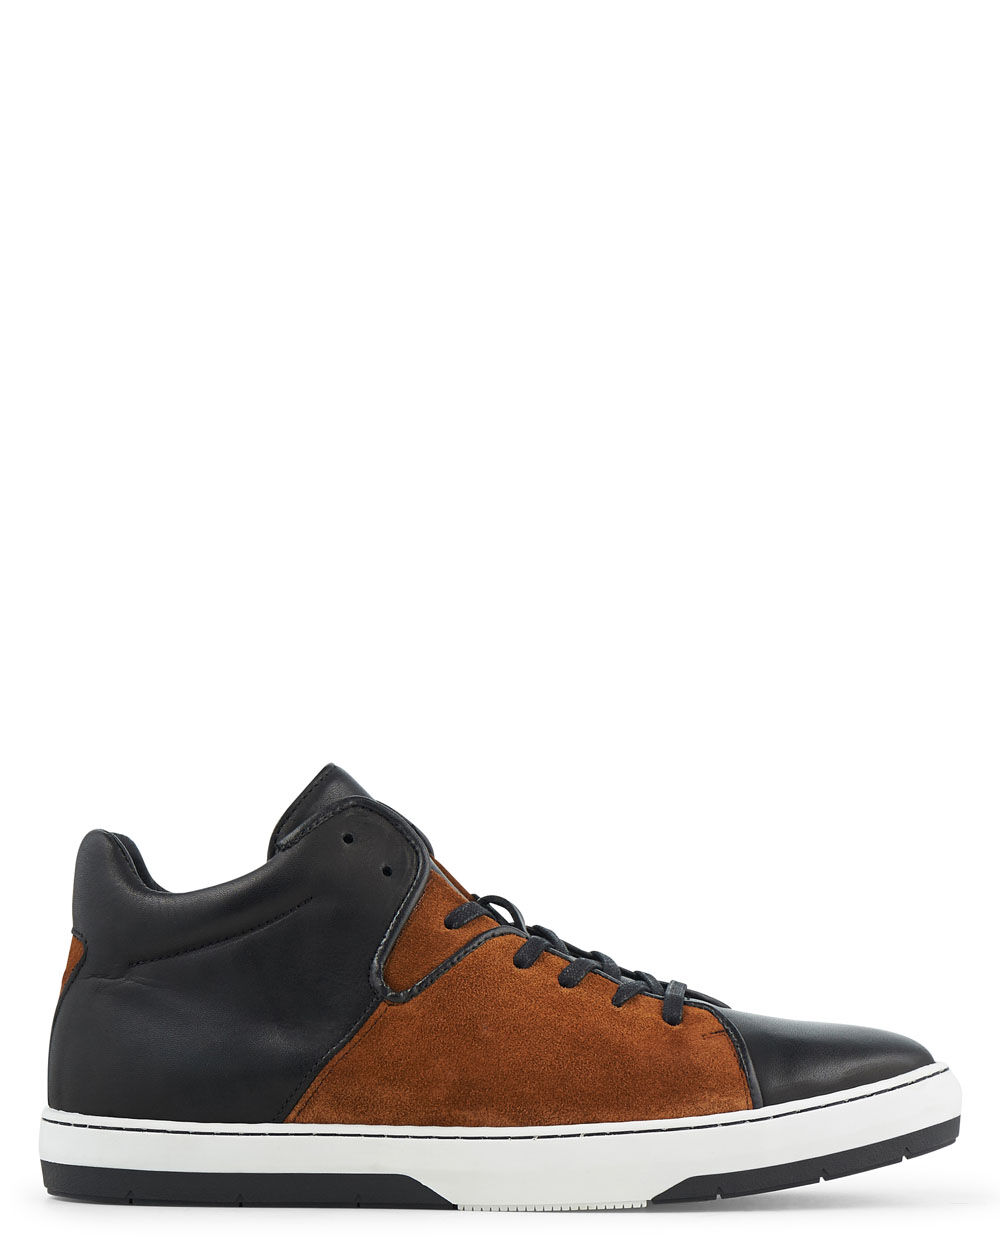 Outlet : destockage chaussures pour homme Minelli Minelli Minelli ef380d